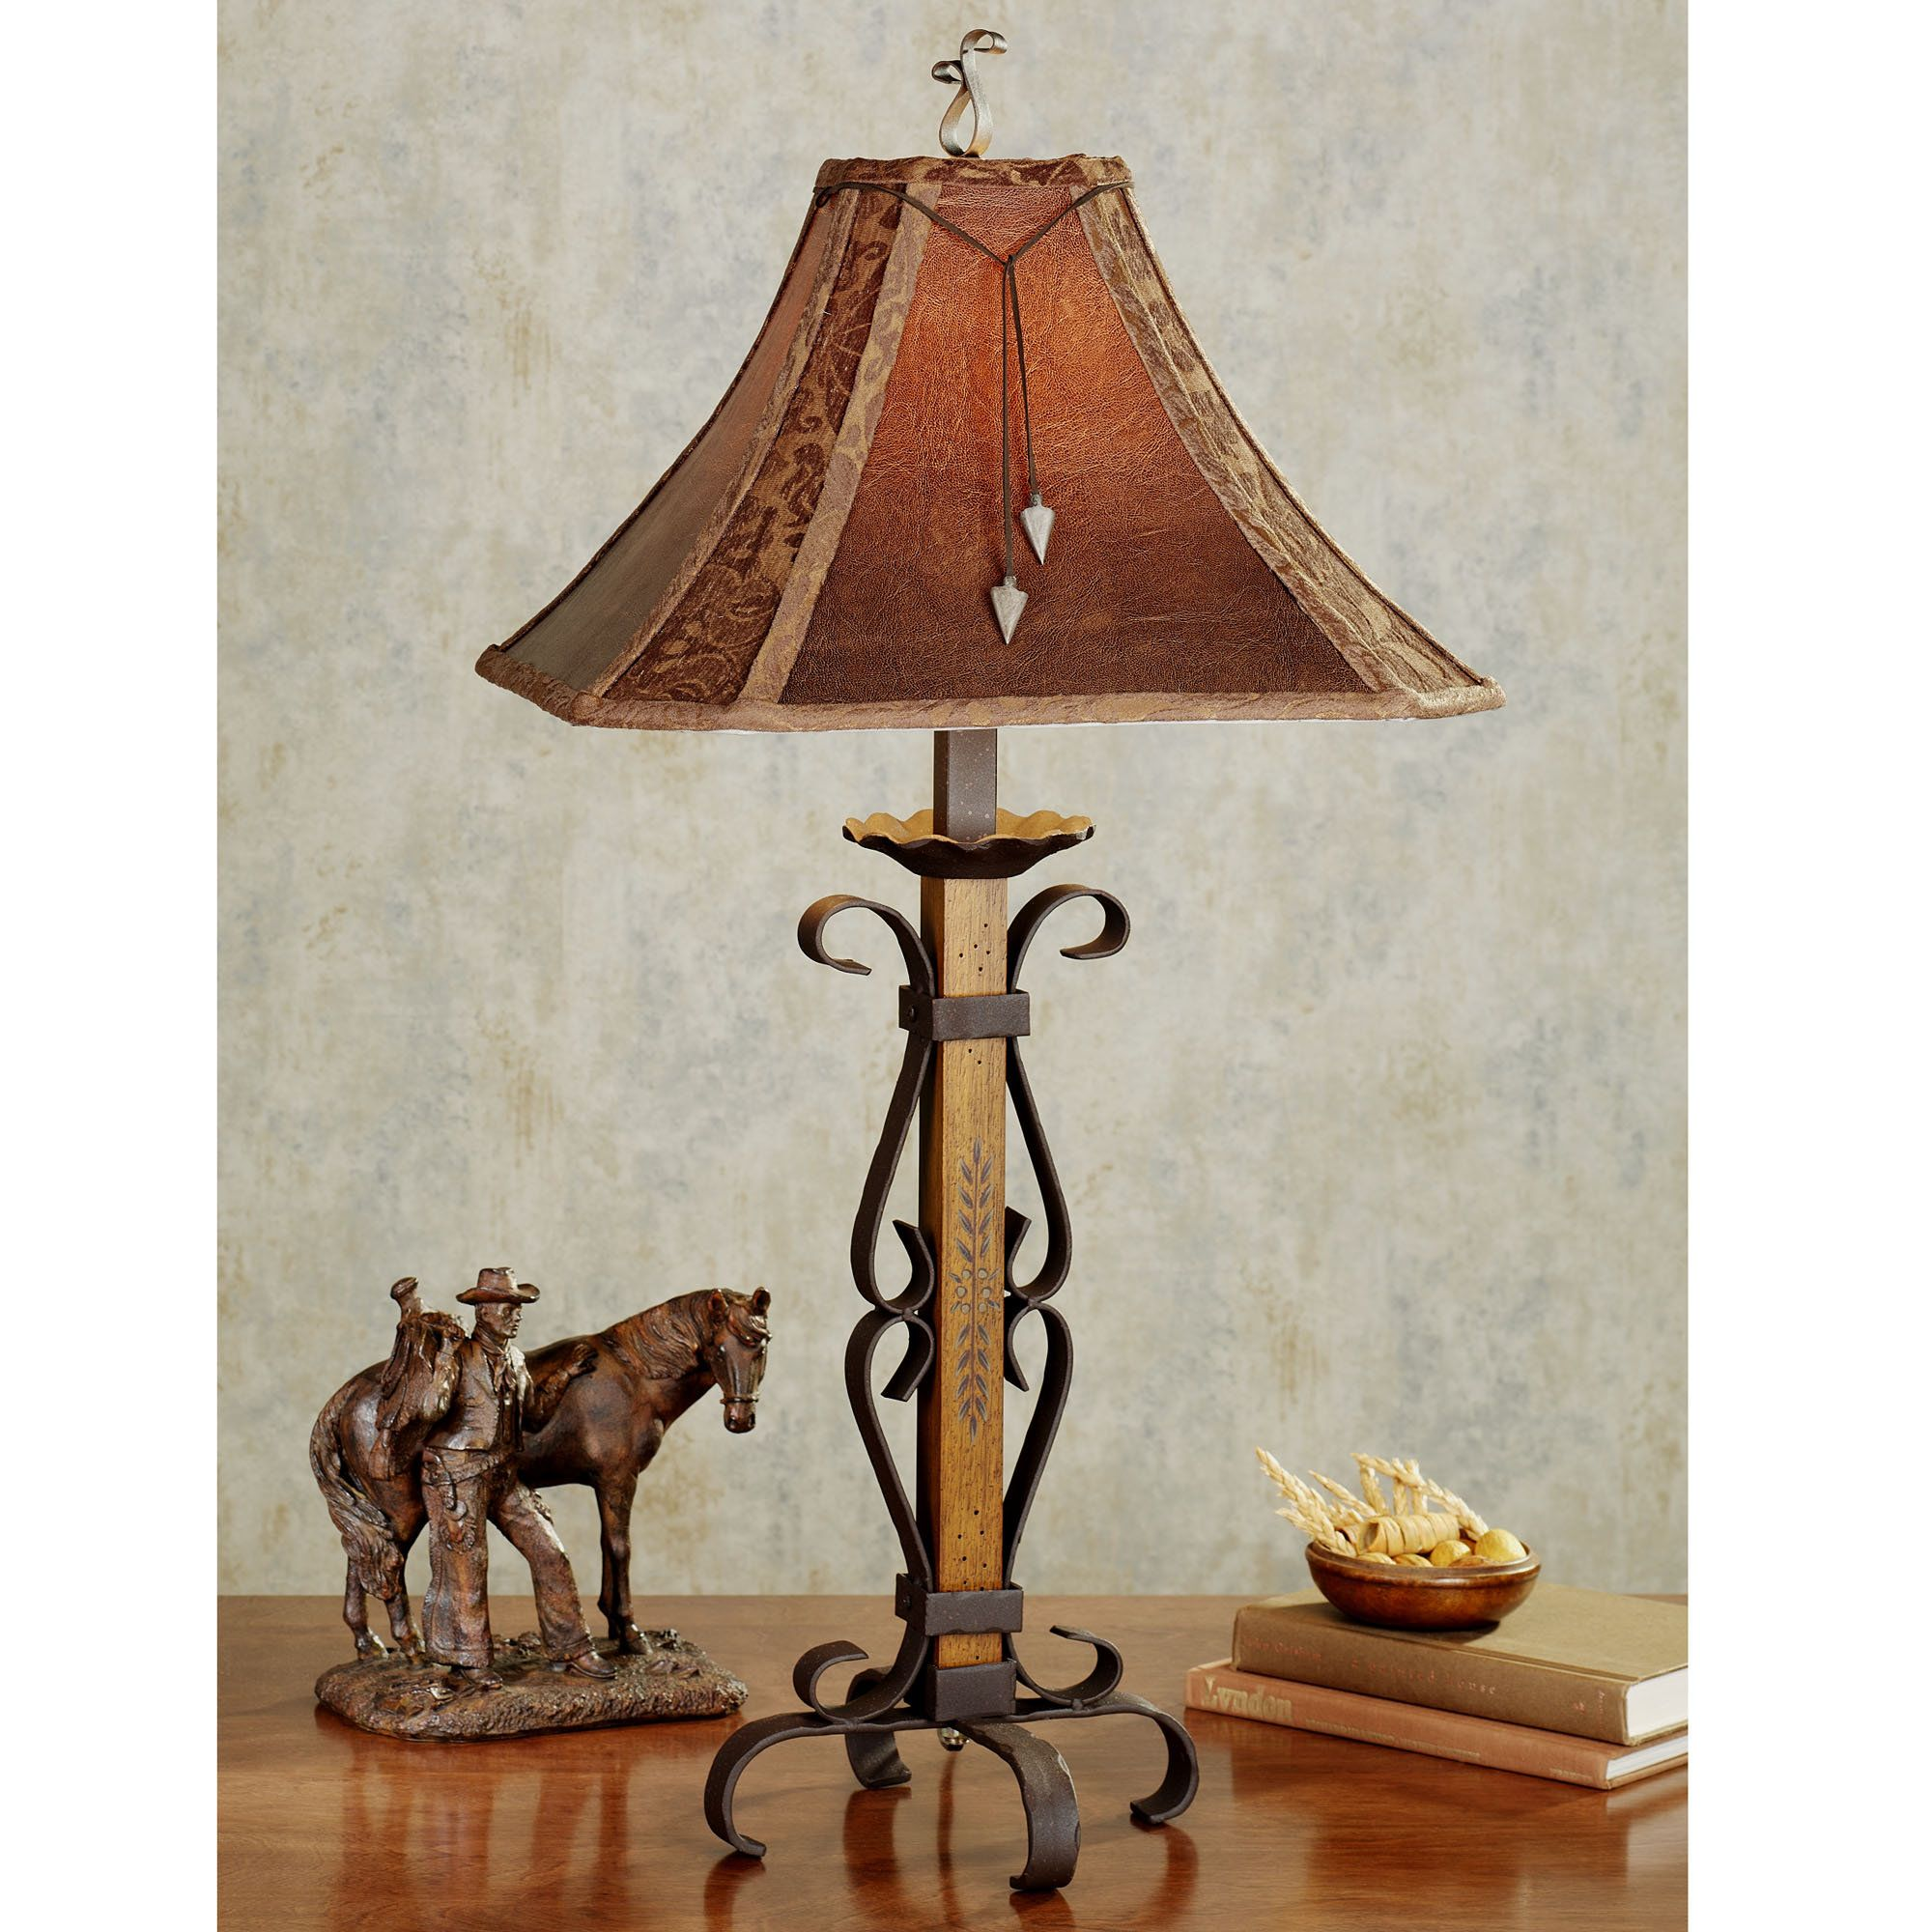 lone star western table lamp lamps rustic accent brown small white side target metal coffee pier imports antique drop leaf end bedroom mirrors entrance house decorating ideas